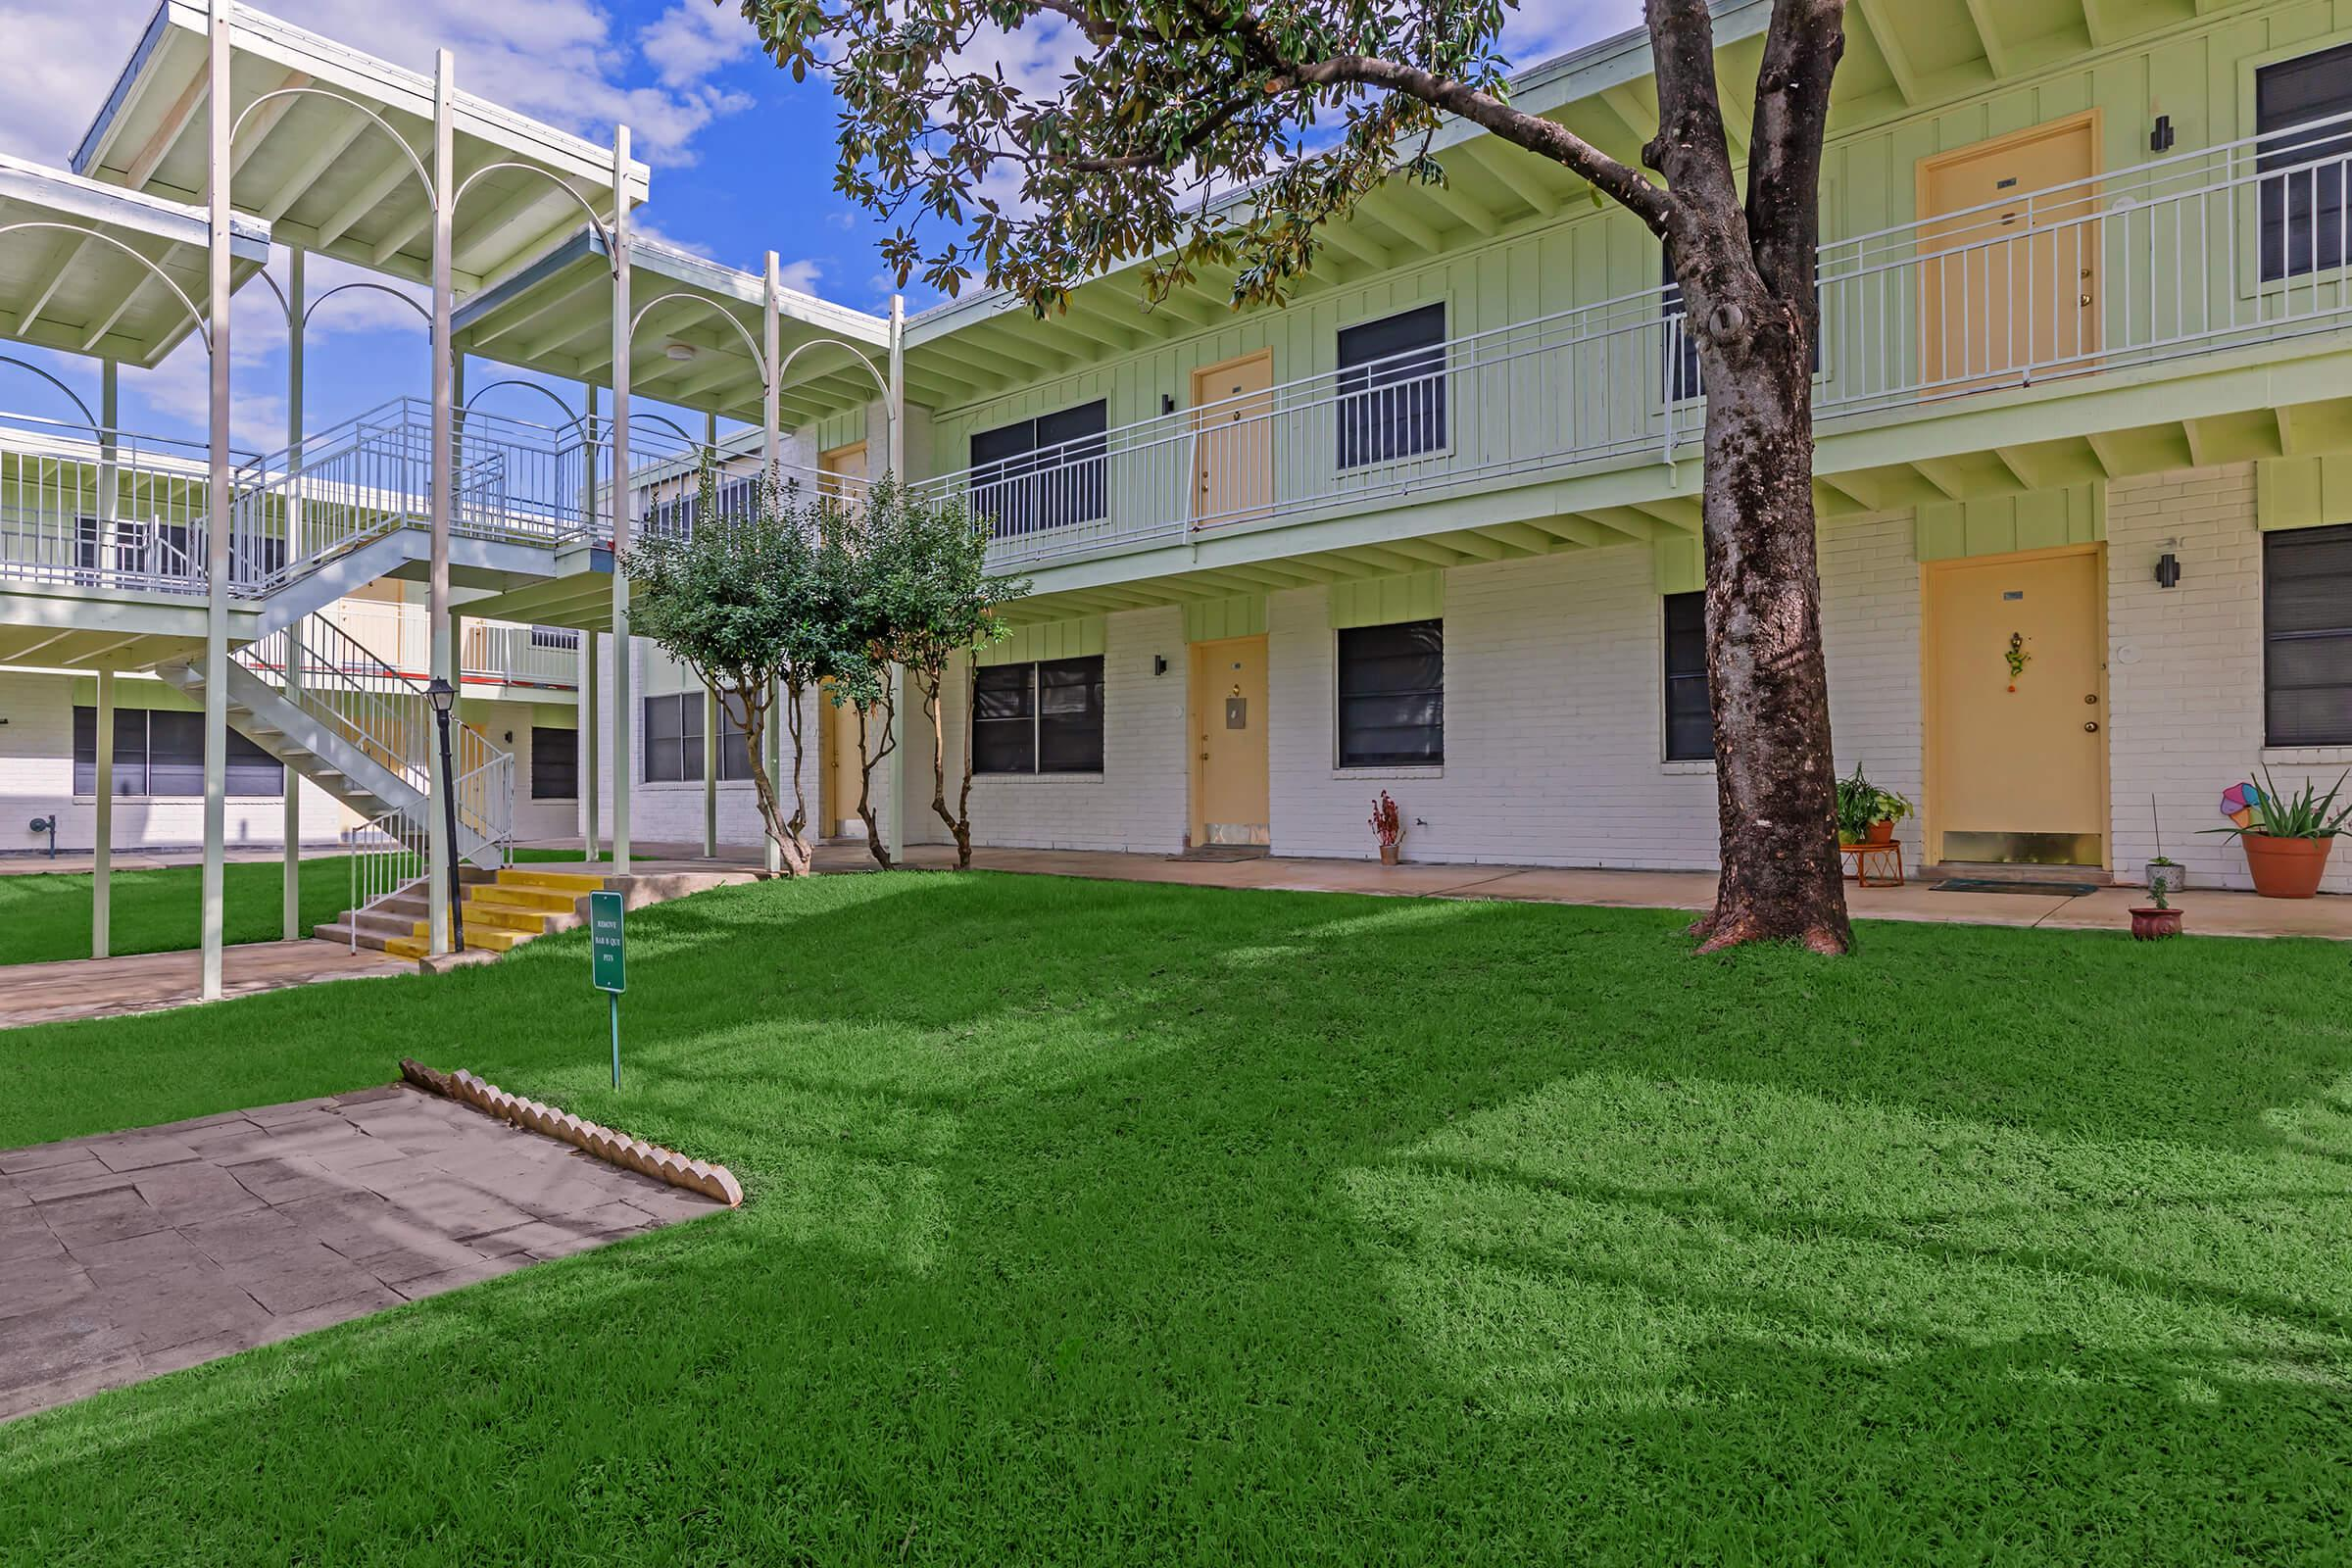 a large lawn in front of a building